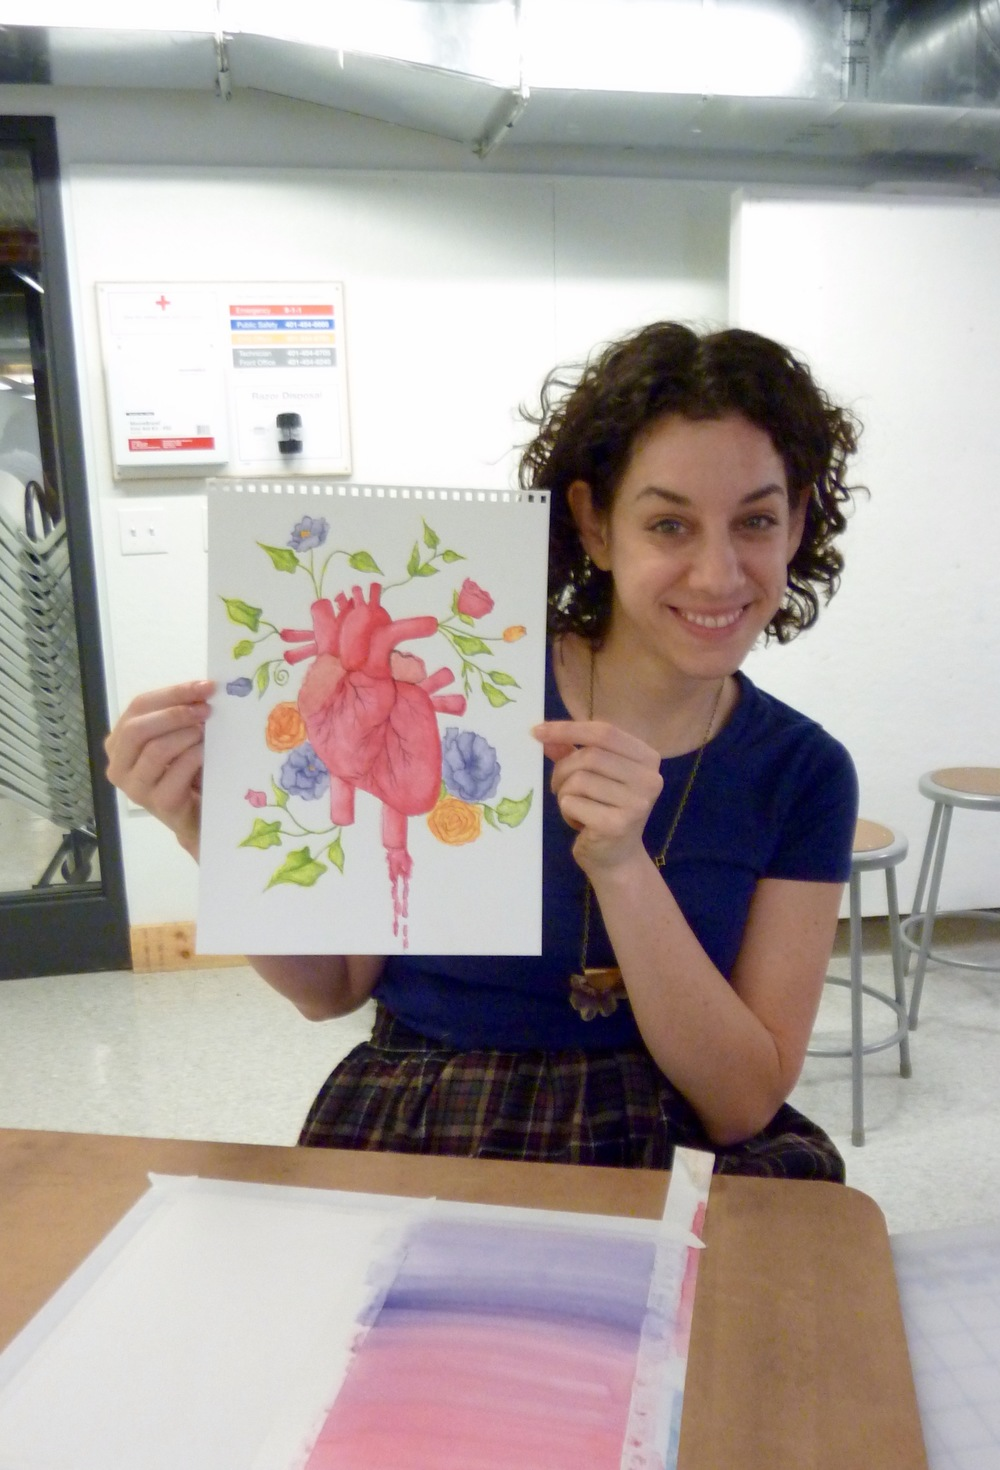 Amy was preparing to teach highschool students anatomy through art.